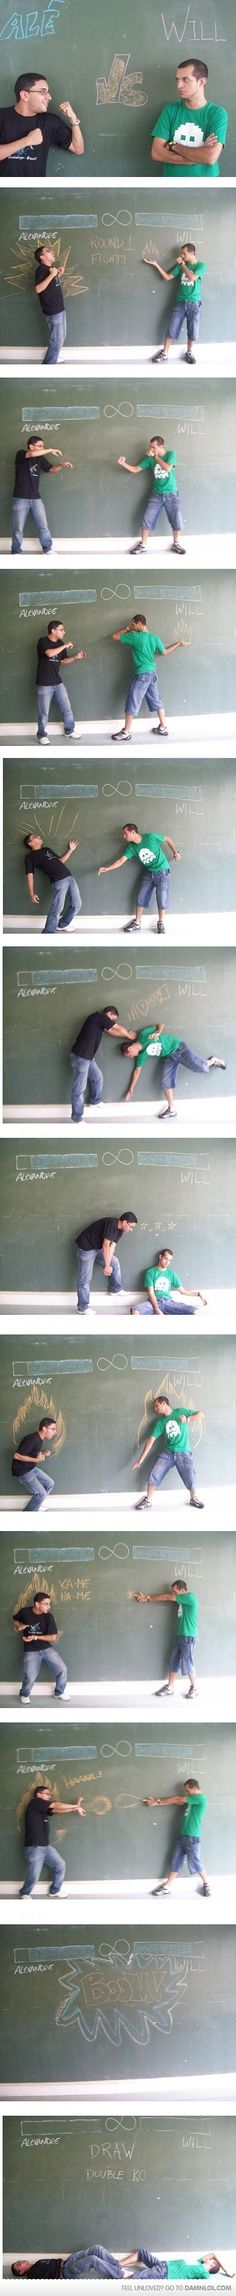 Epic Chalk Board Battle  #funny #epic